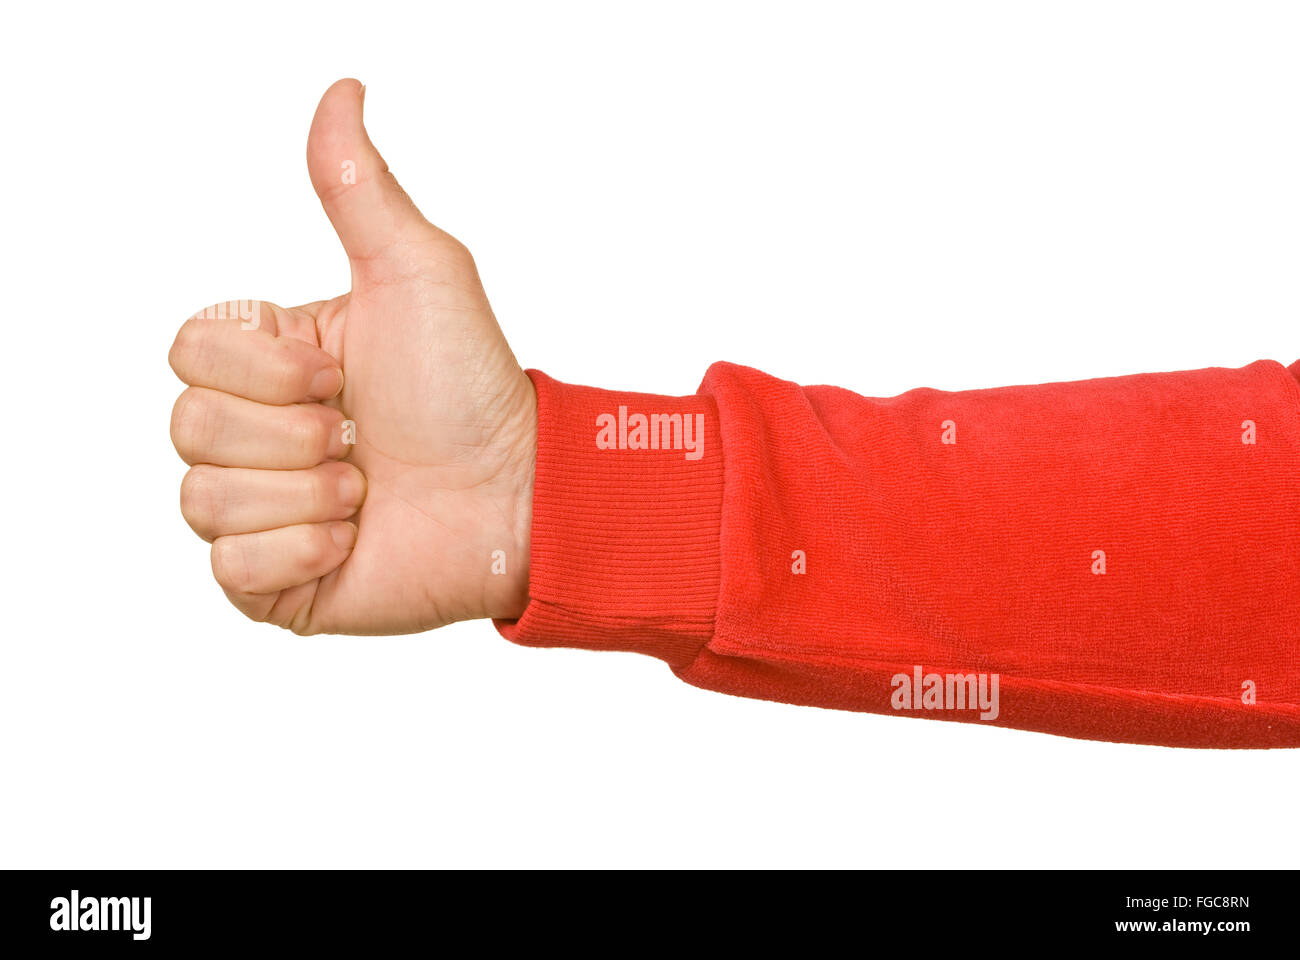 Thumbs Up With Red Sleeve - Stock Image